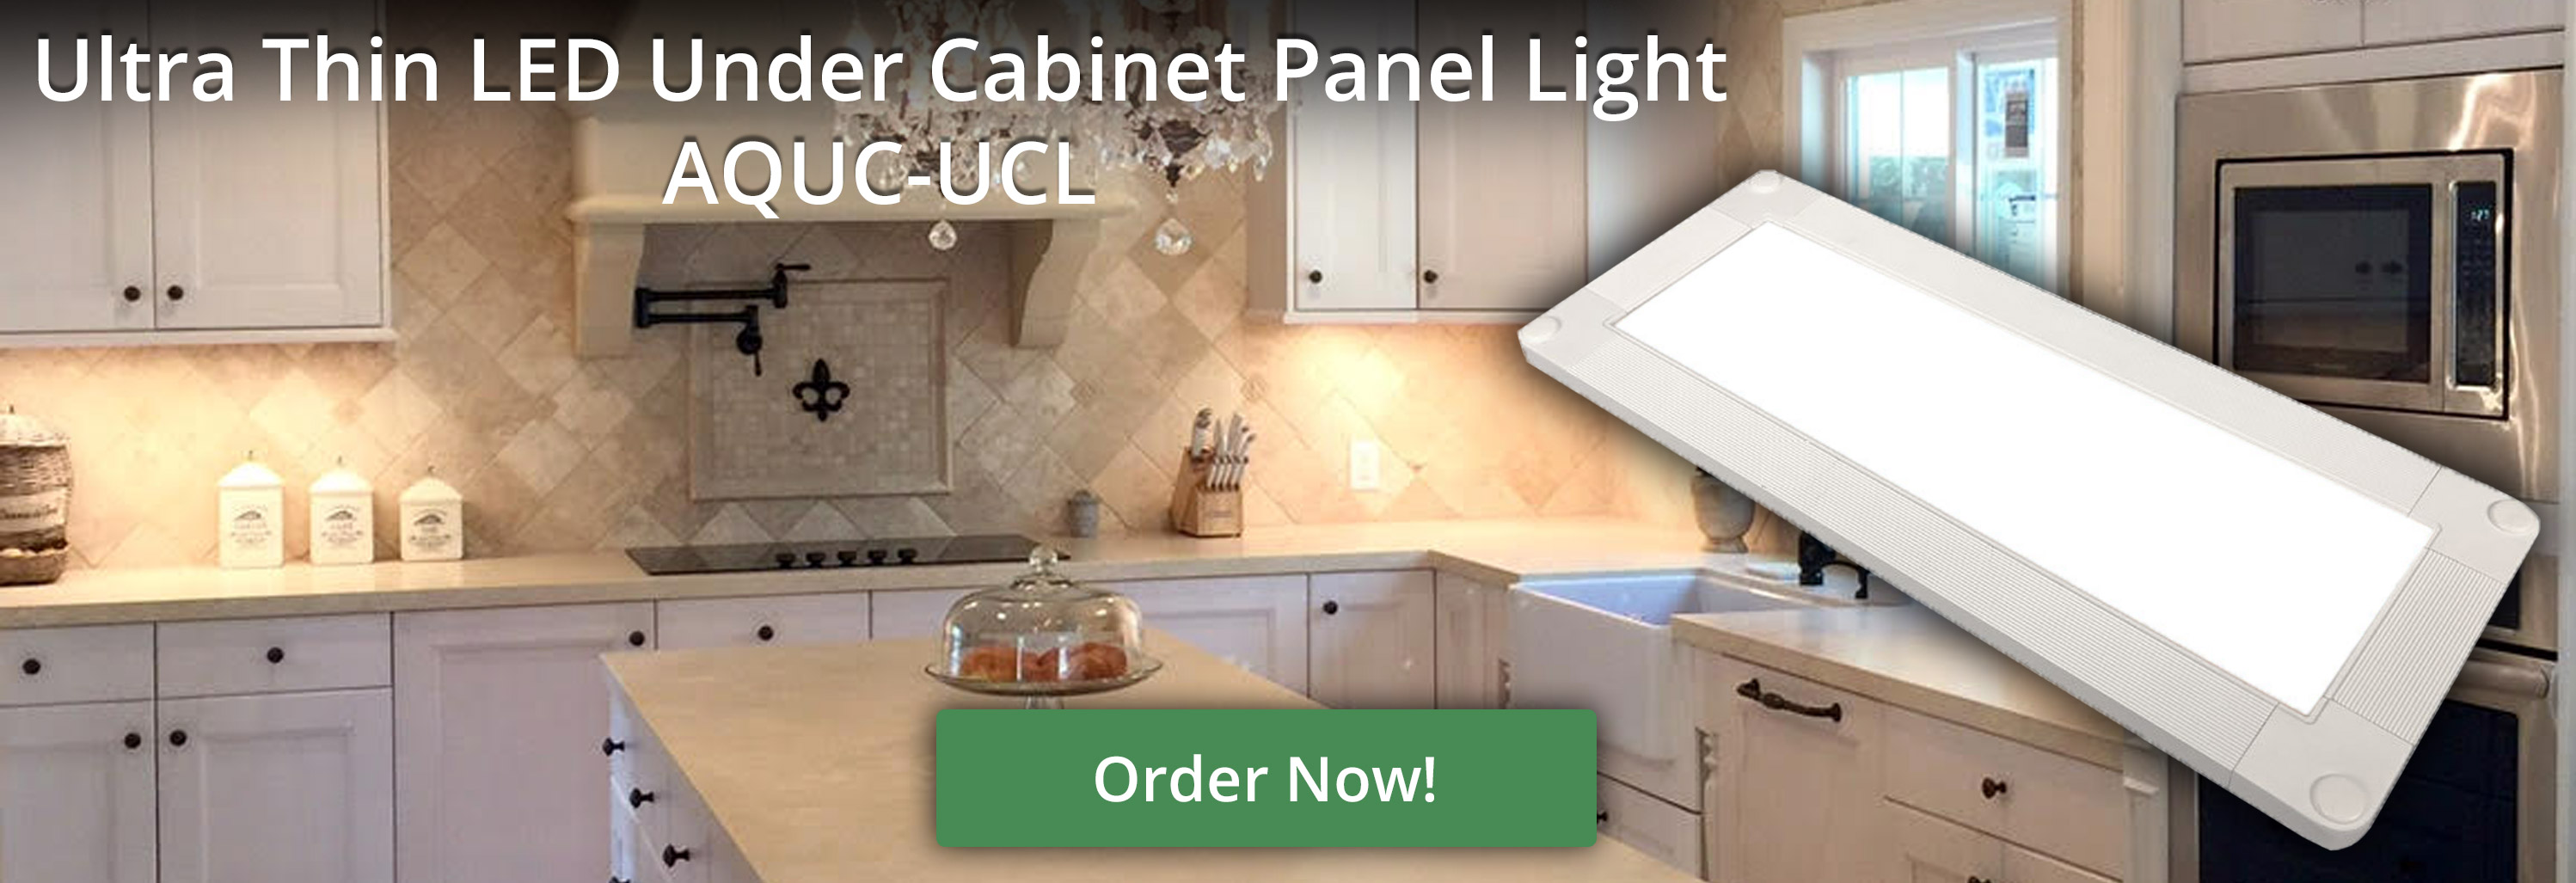 AQUC-UCL Ultra Thin LED Under Cabinet Panel Light Banner